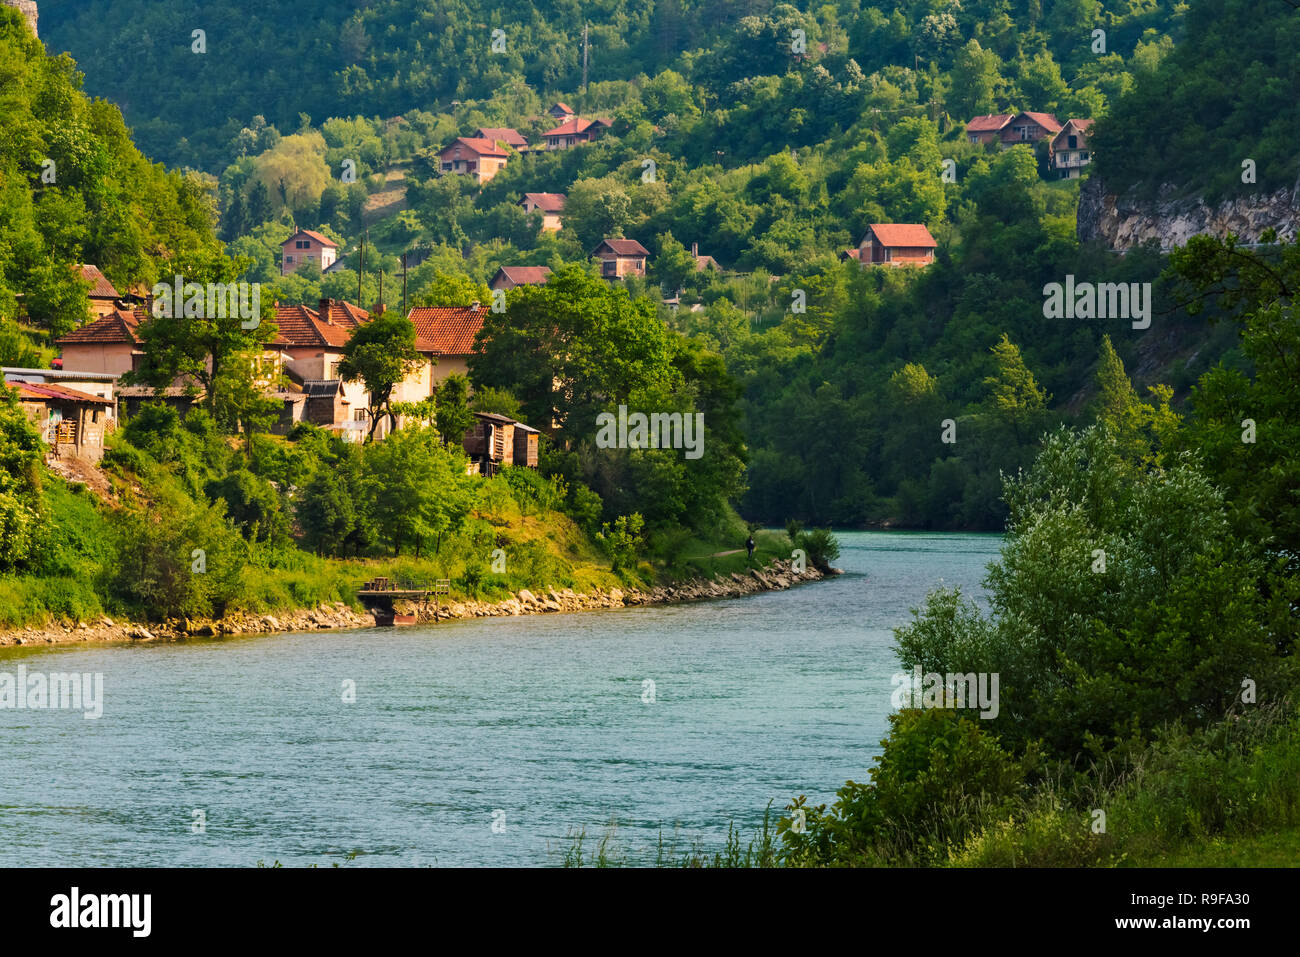 Houses and church on the riverbank of the Drina River, Visegrad, Bosnia and Herzegovina - Stock Image